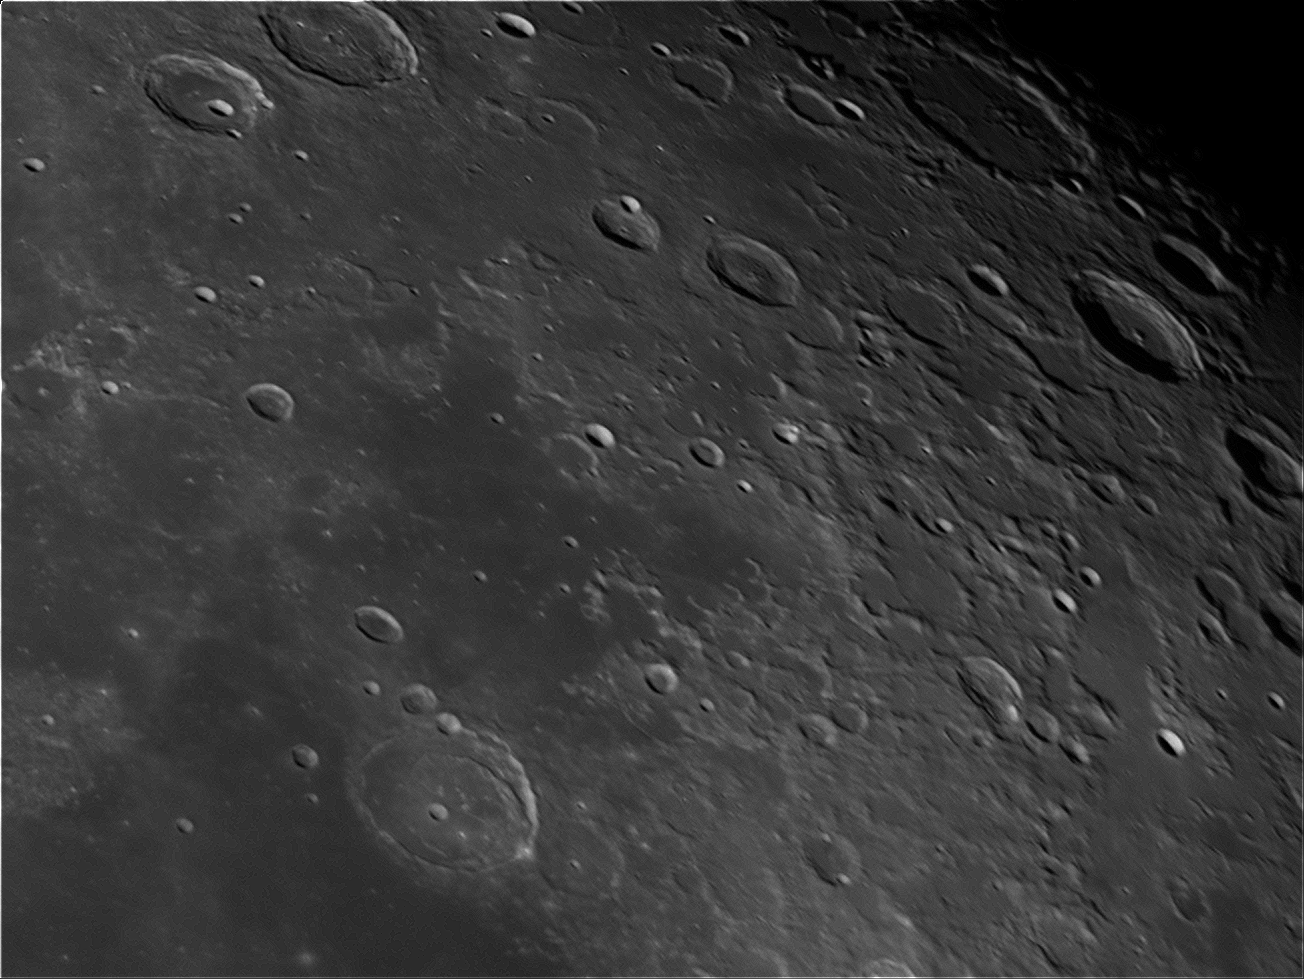 moon_as3_1.png.80b595ff4383852c3cad296b743e5dcf.png